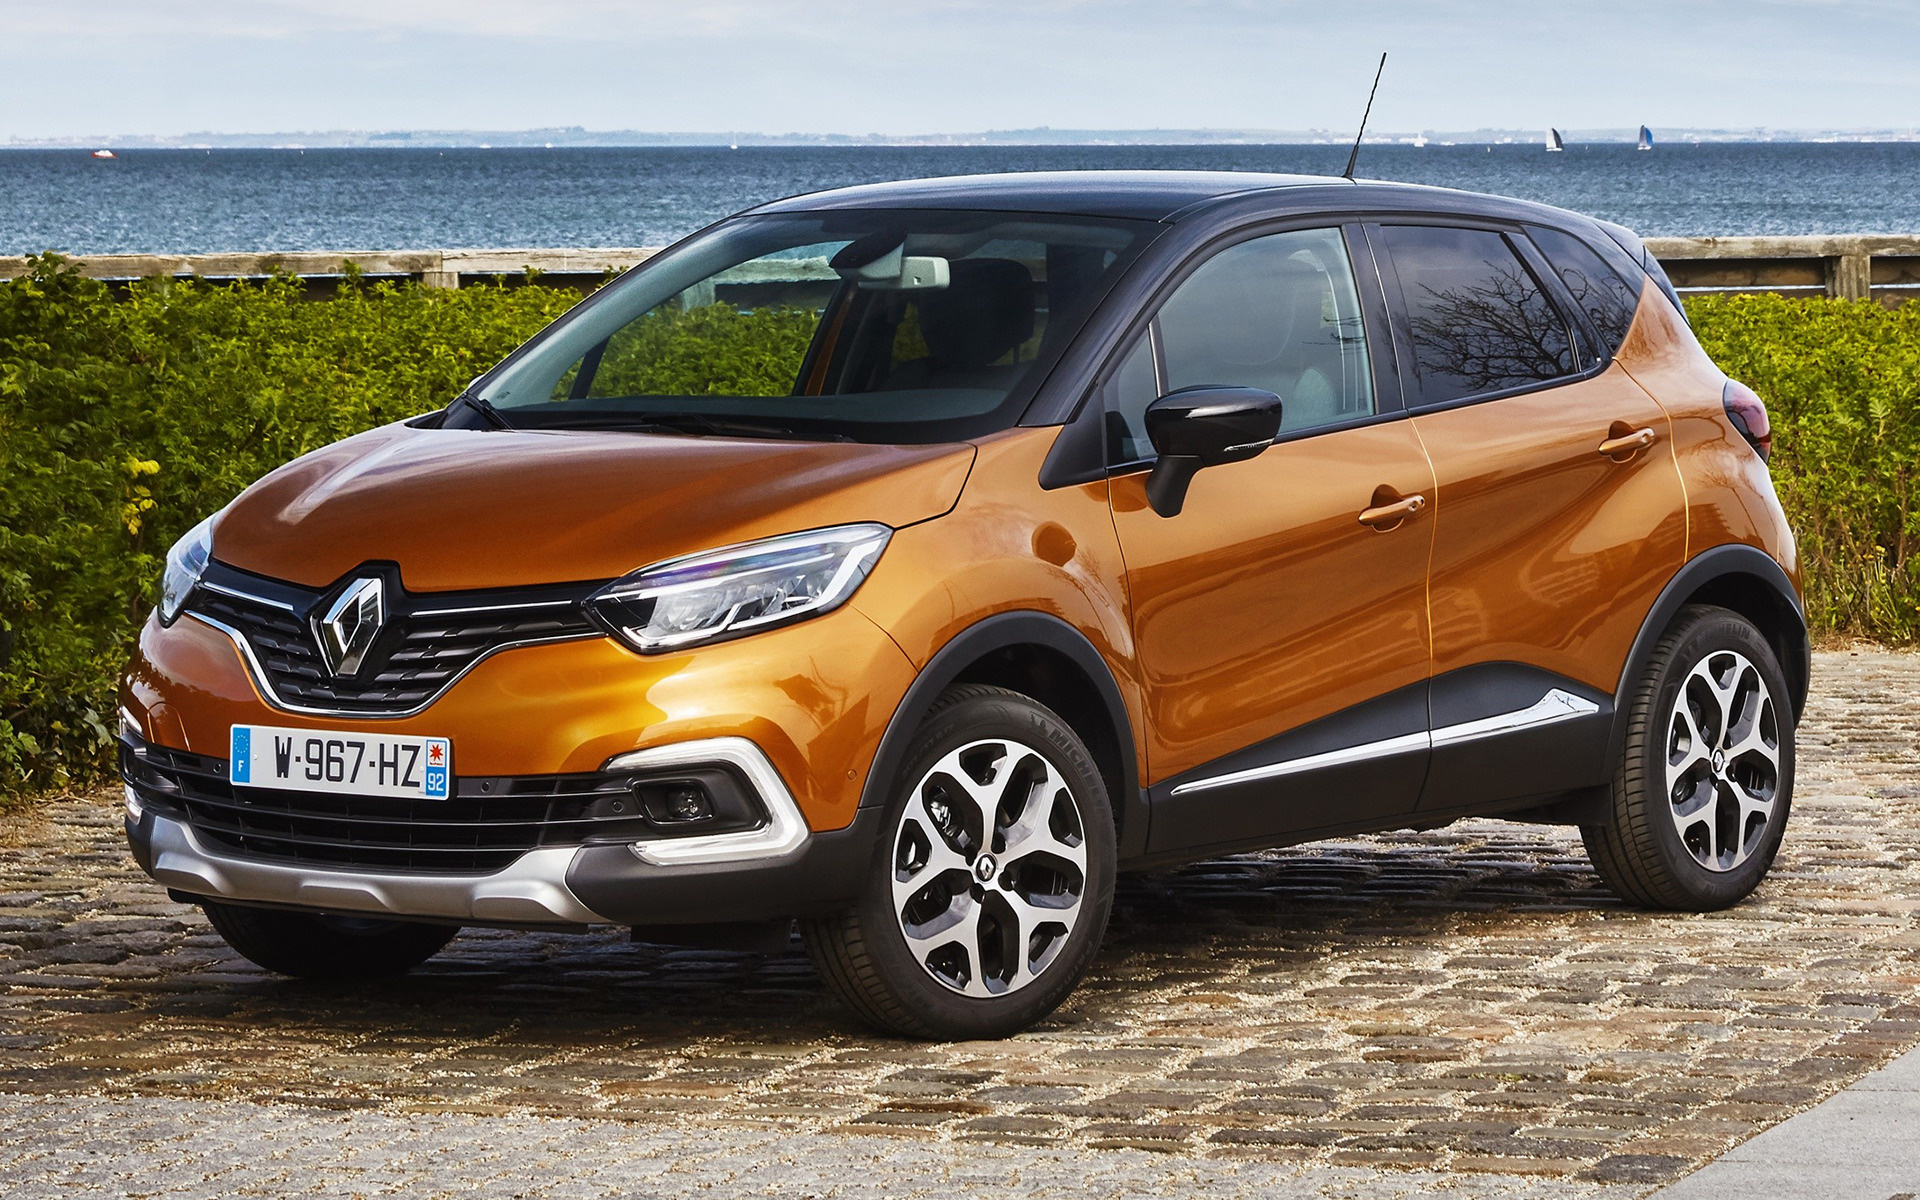 Renault Captur (2017) Wallpapers and HD Images - Car Pixel